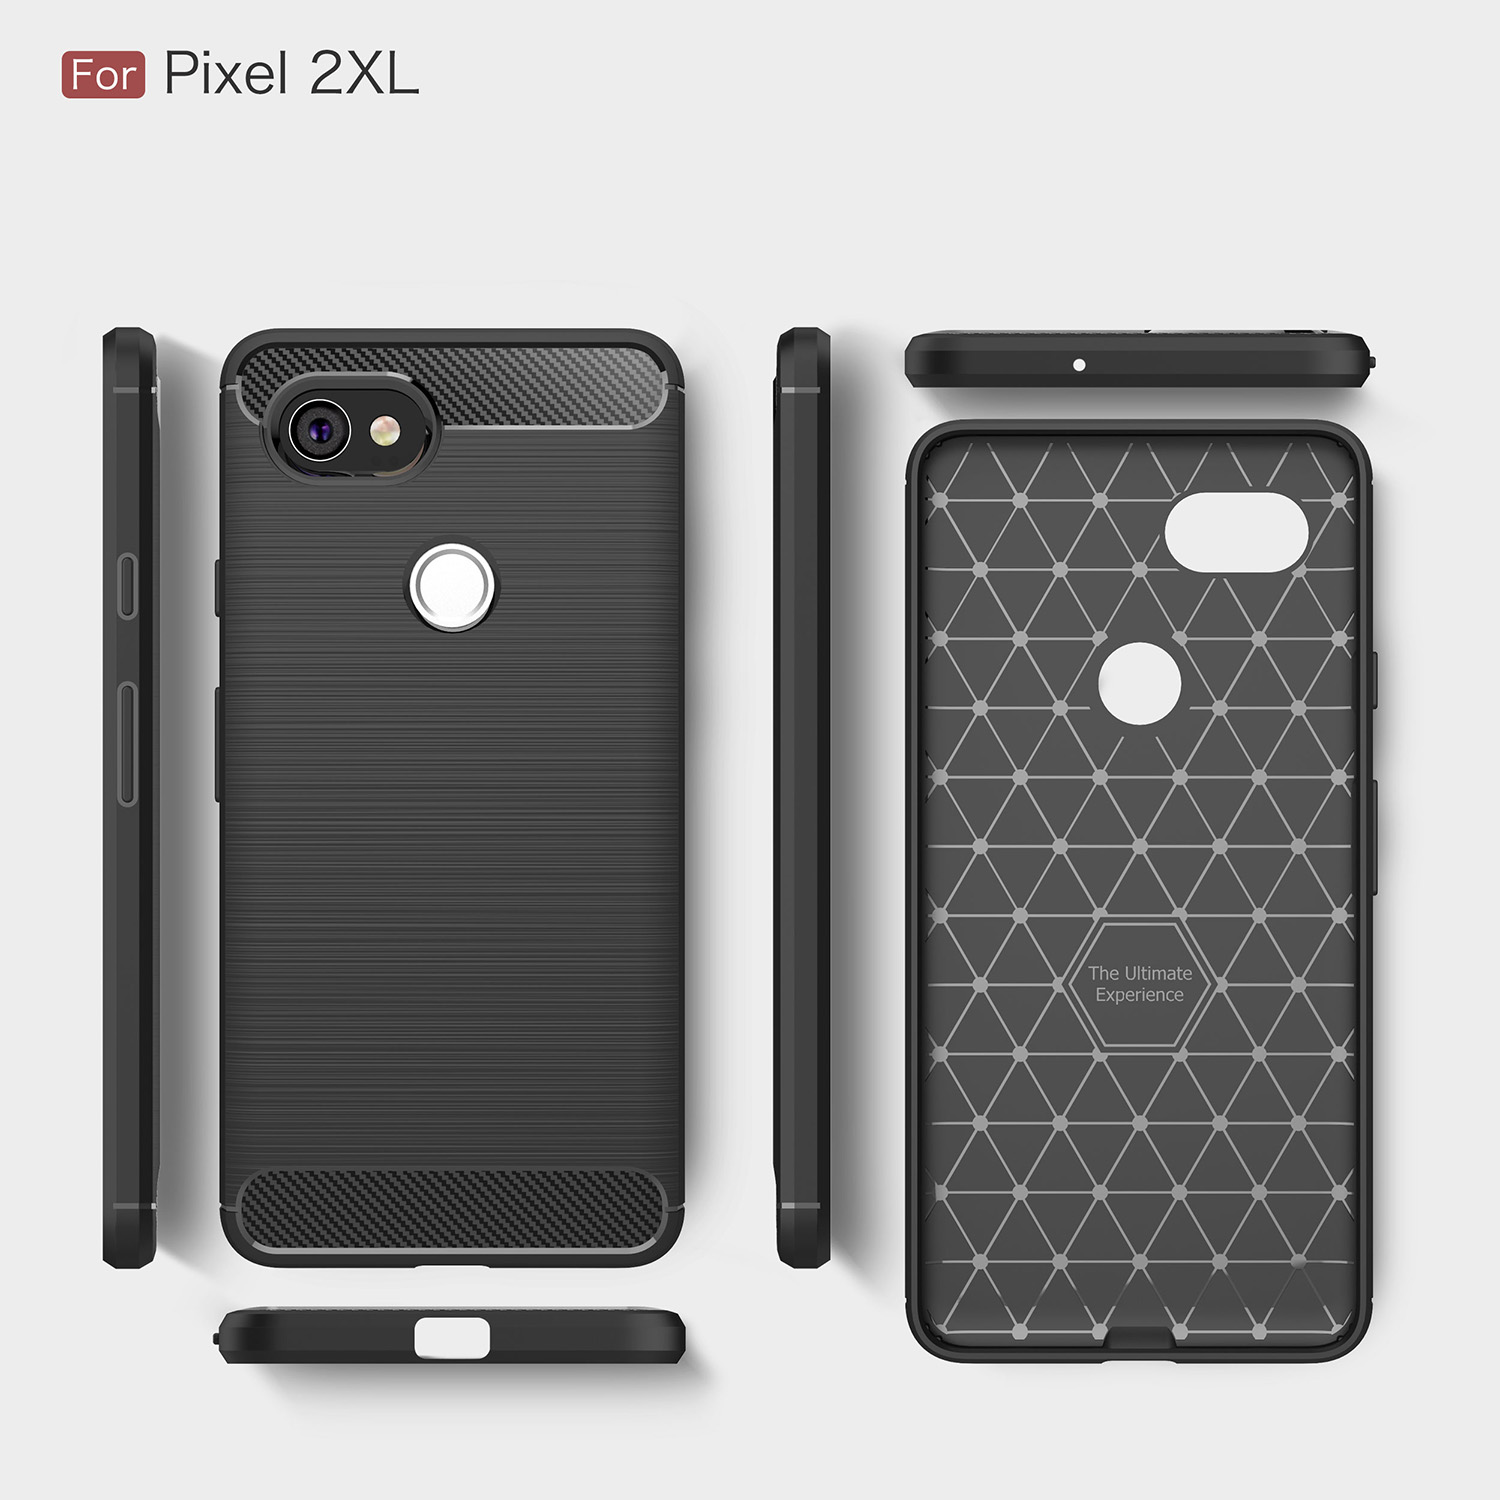 Carbon Fiber Silicone Soft Case For Google Pixel 2 XL Anti Knock Tpu Back Cover For Google Pixel Protective Phone Shell Capa